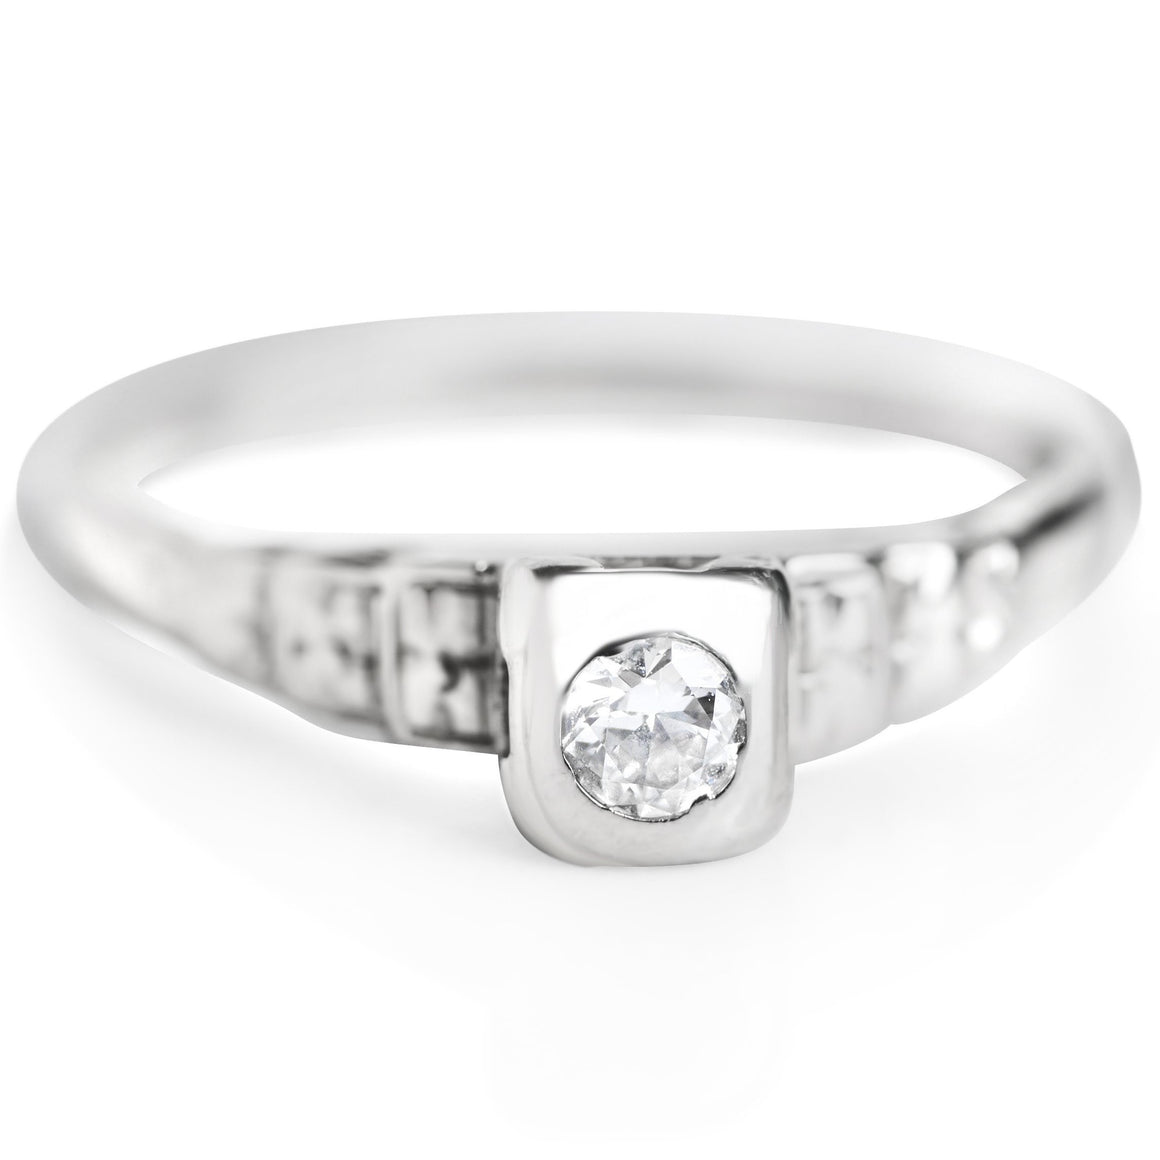 SIMPLE DIAMOND ANTIQUE ENGAGEMENT RING WITH WHITE GOLD BAND AND GEOMETRIC DETAILS